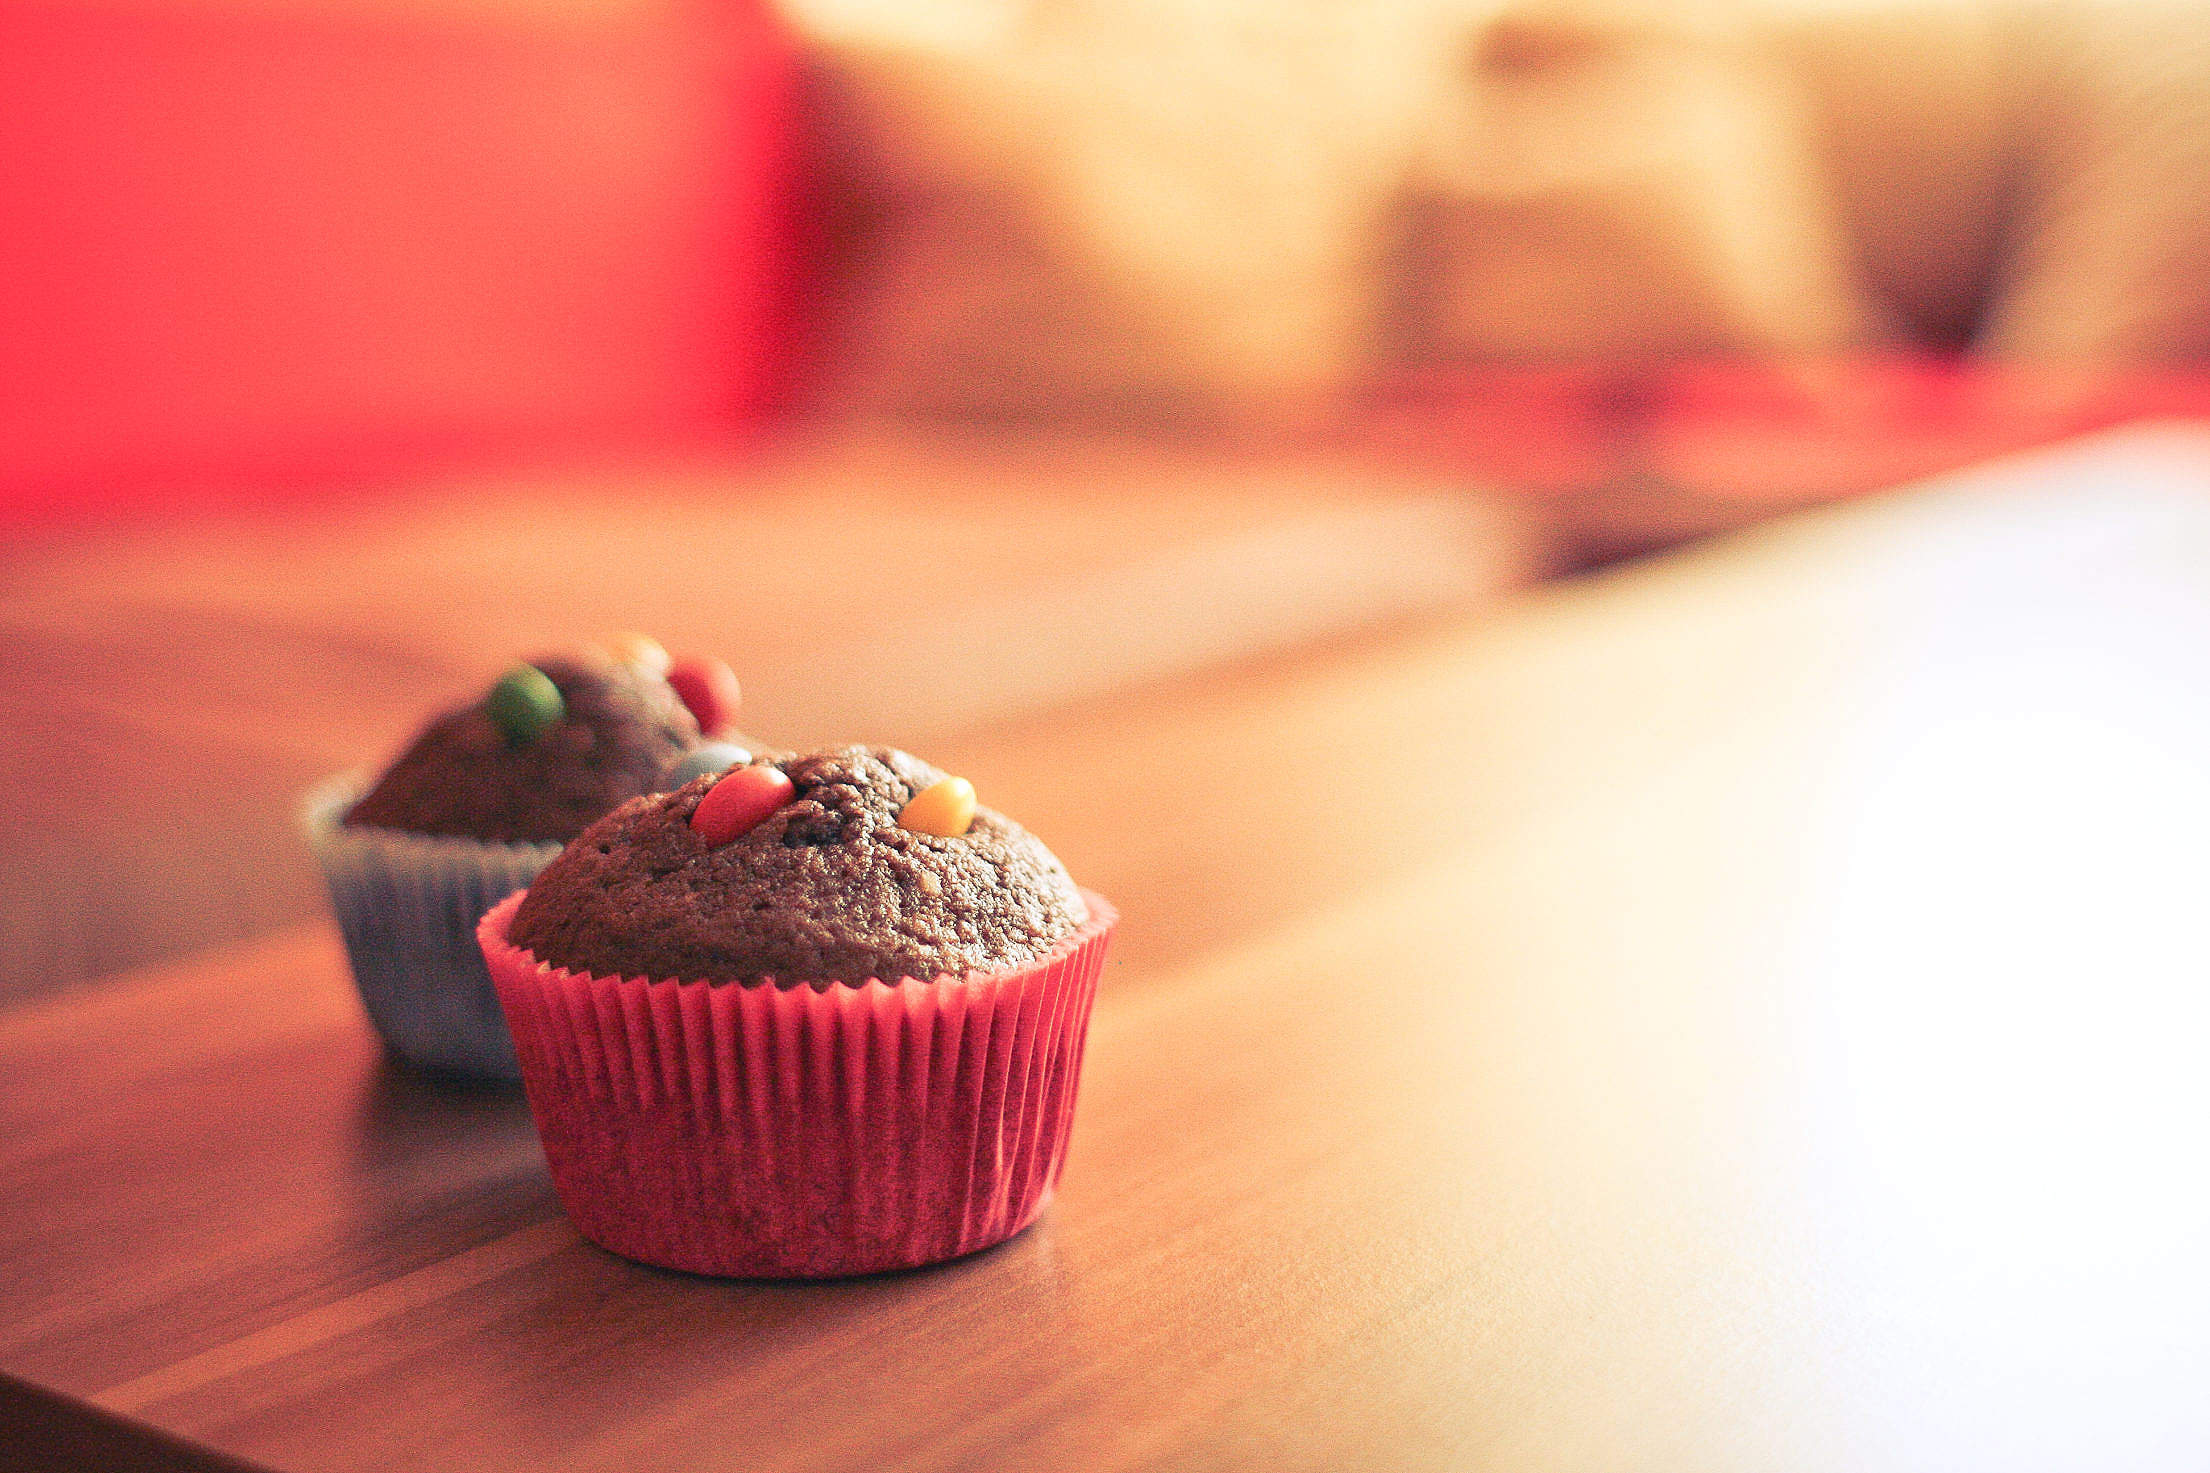 Tasty & Colorful Muffins Free Stock Photo